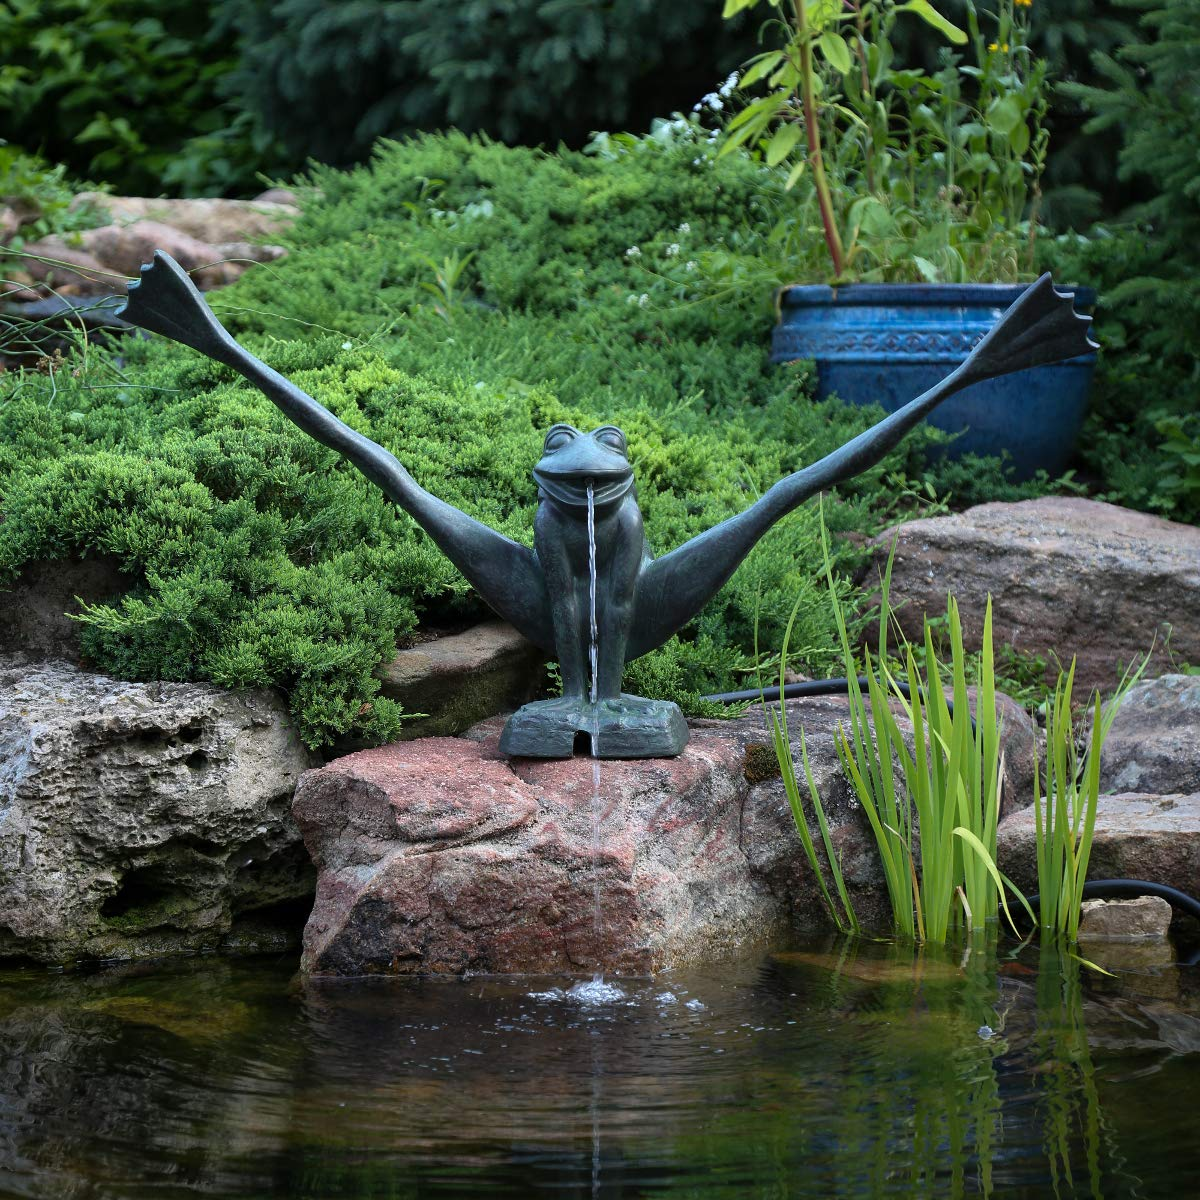 Aquascape Crazy Legs Frog Spitter Fountain for Ponds and Water Gardens   78312 by Aquascape